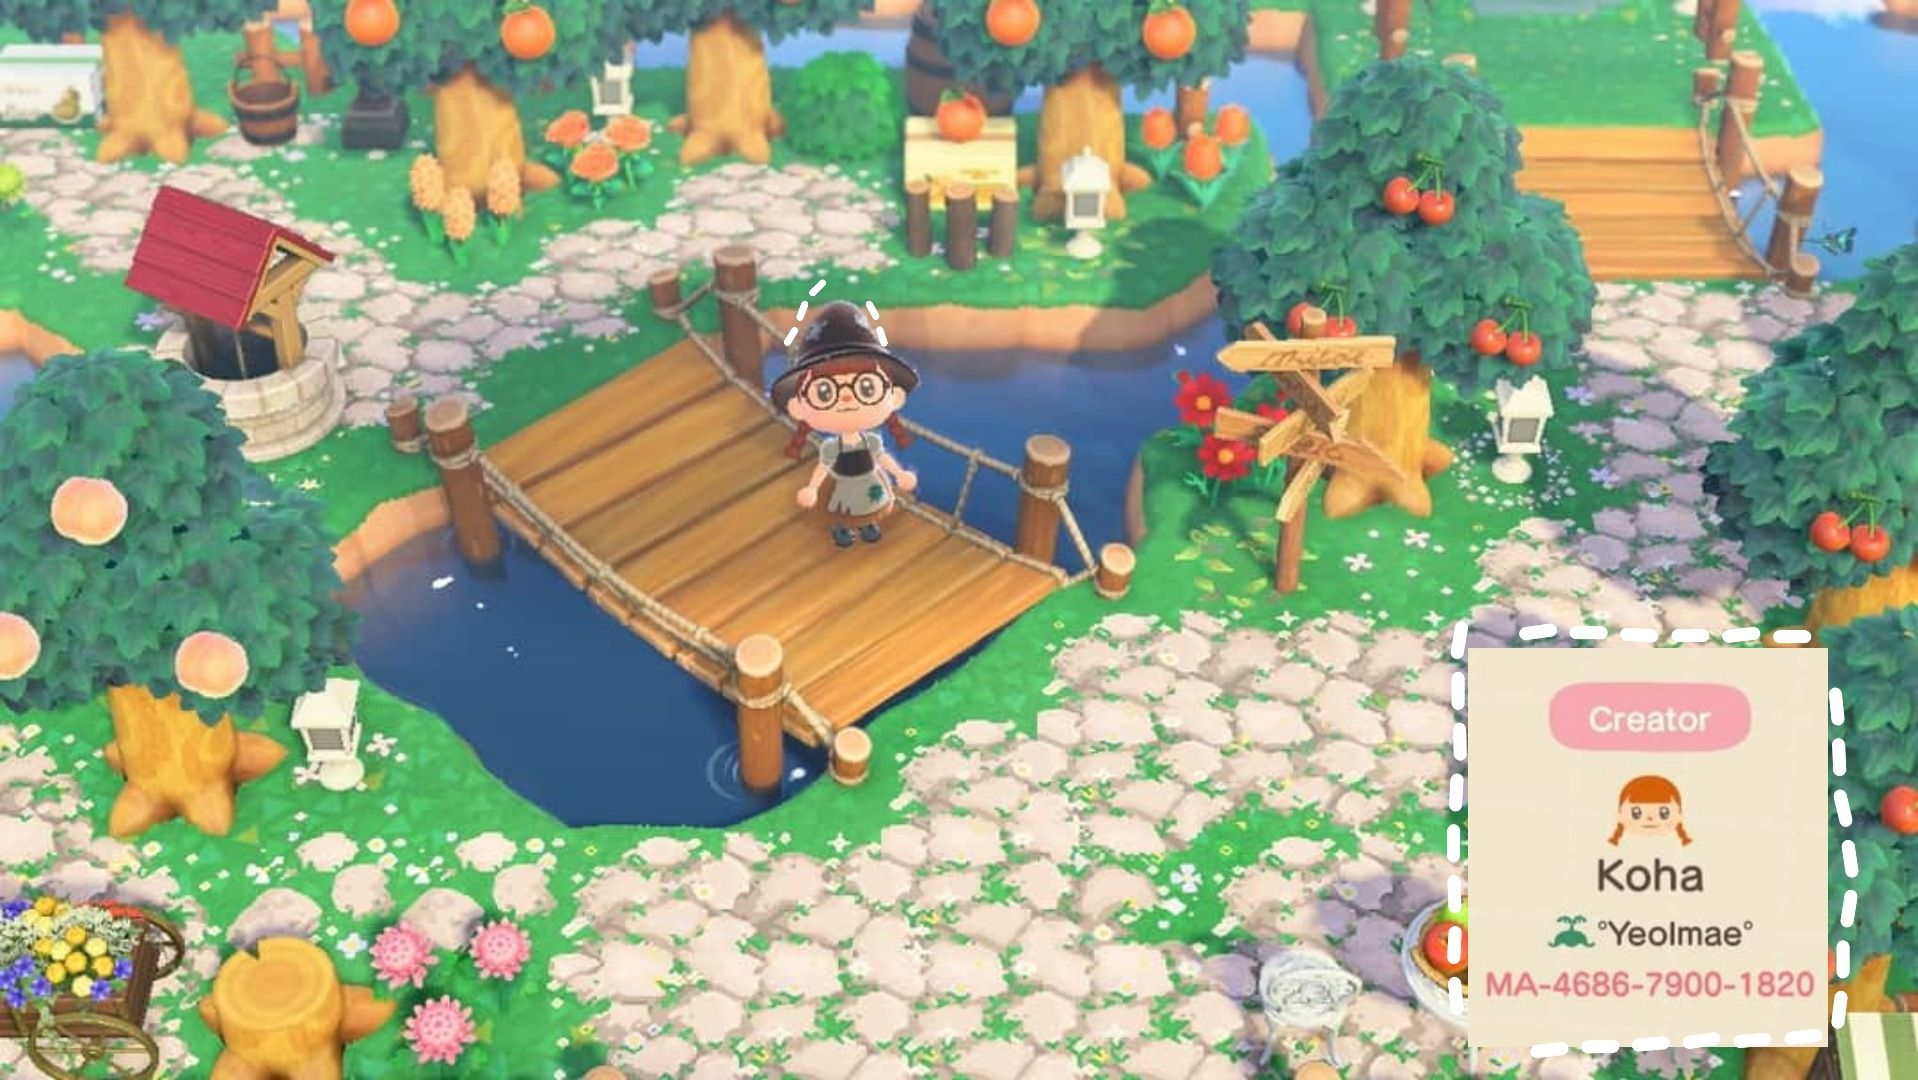 15+ How to get paths in animal crossing images